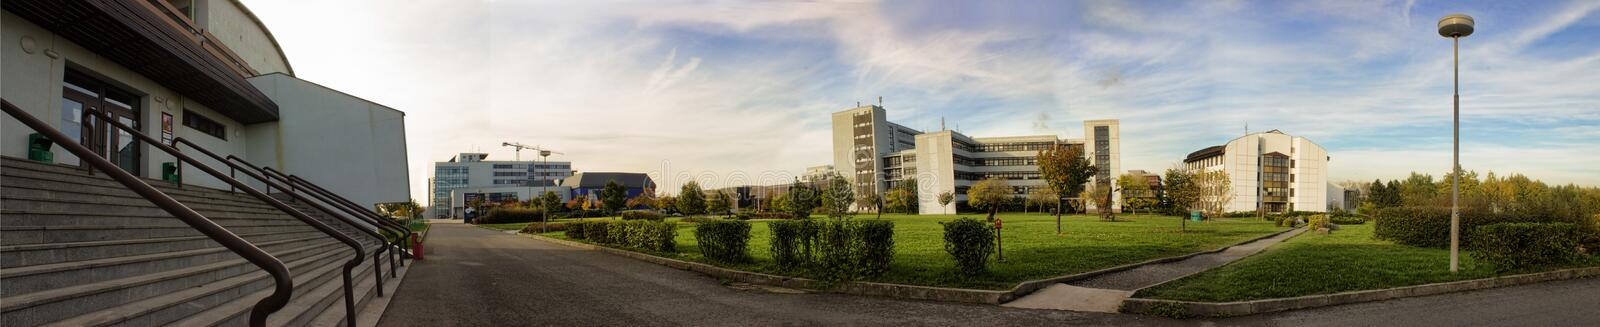 University of West Bohemia. Panorama of the campus of University of West Bohemia, Czech Republic stock photography